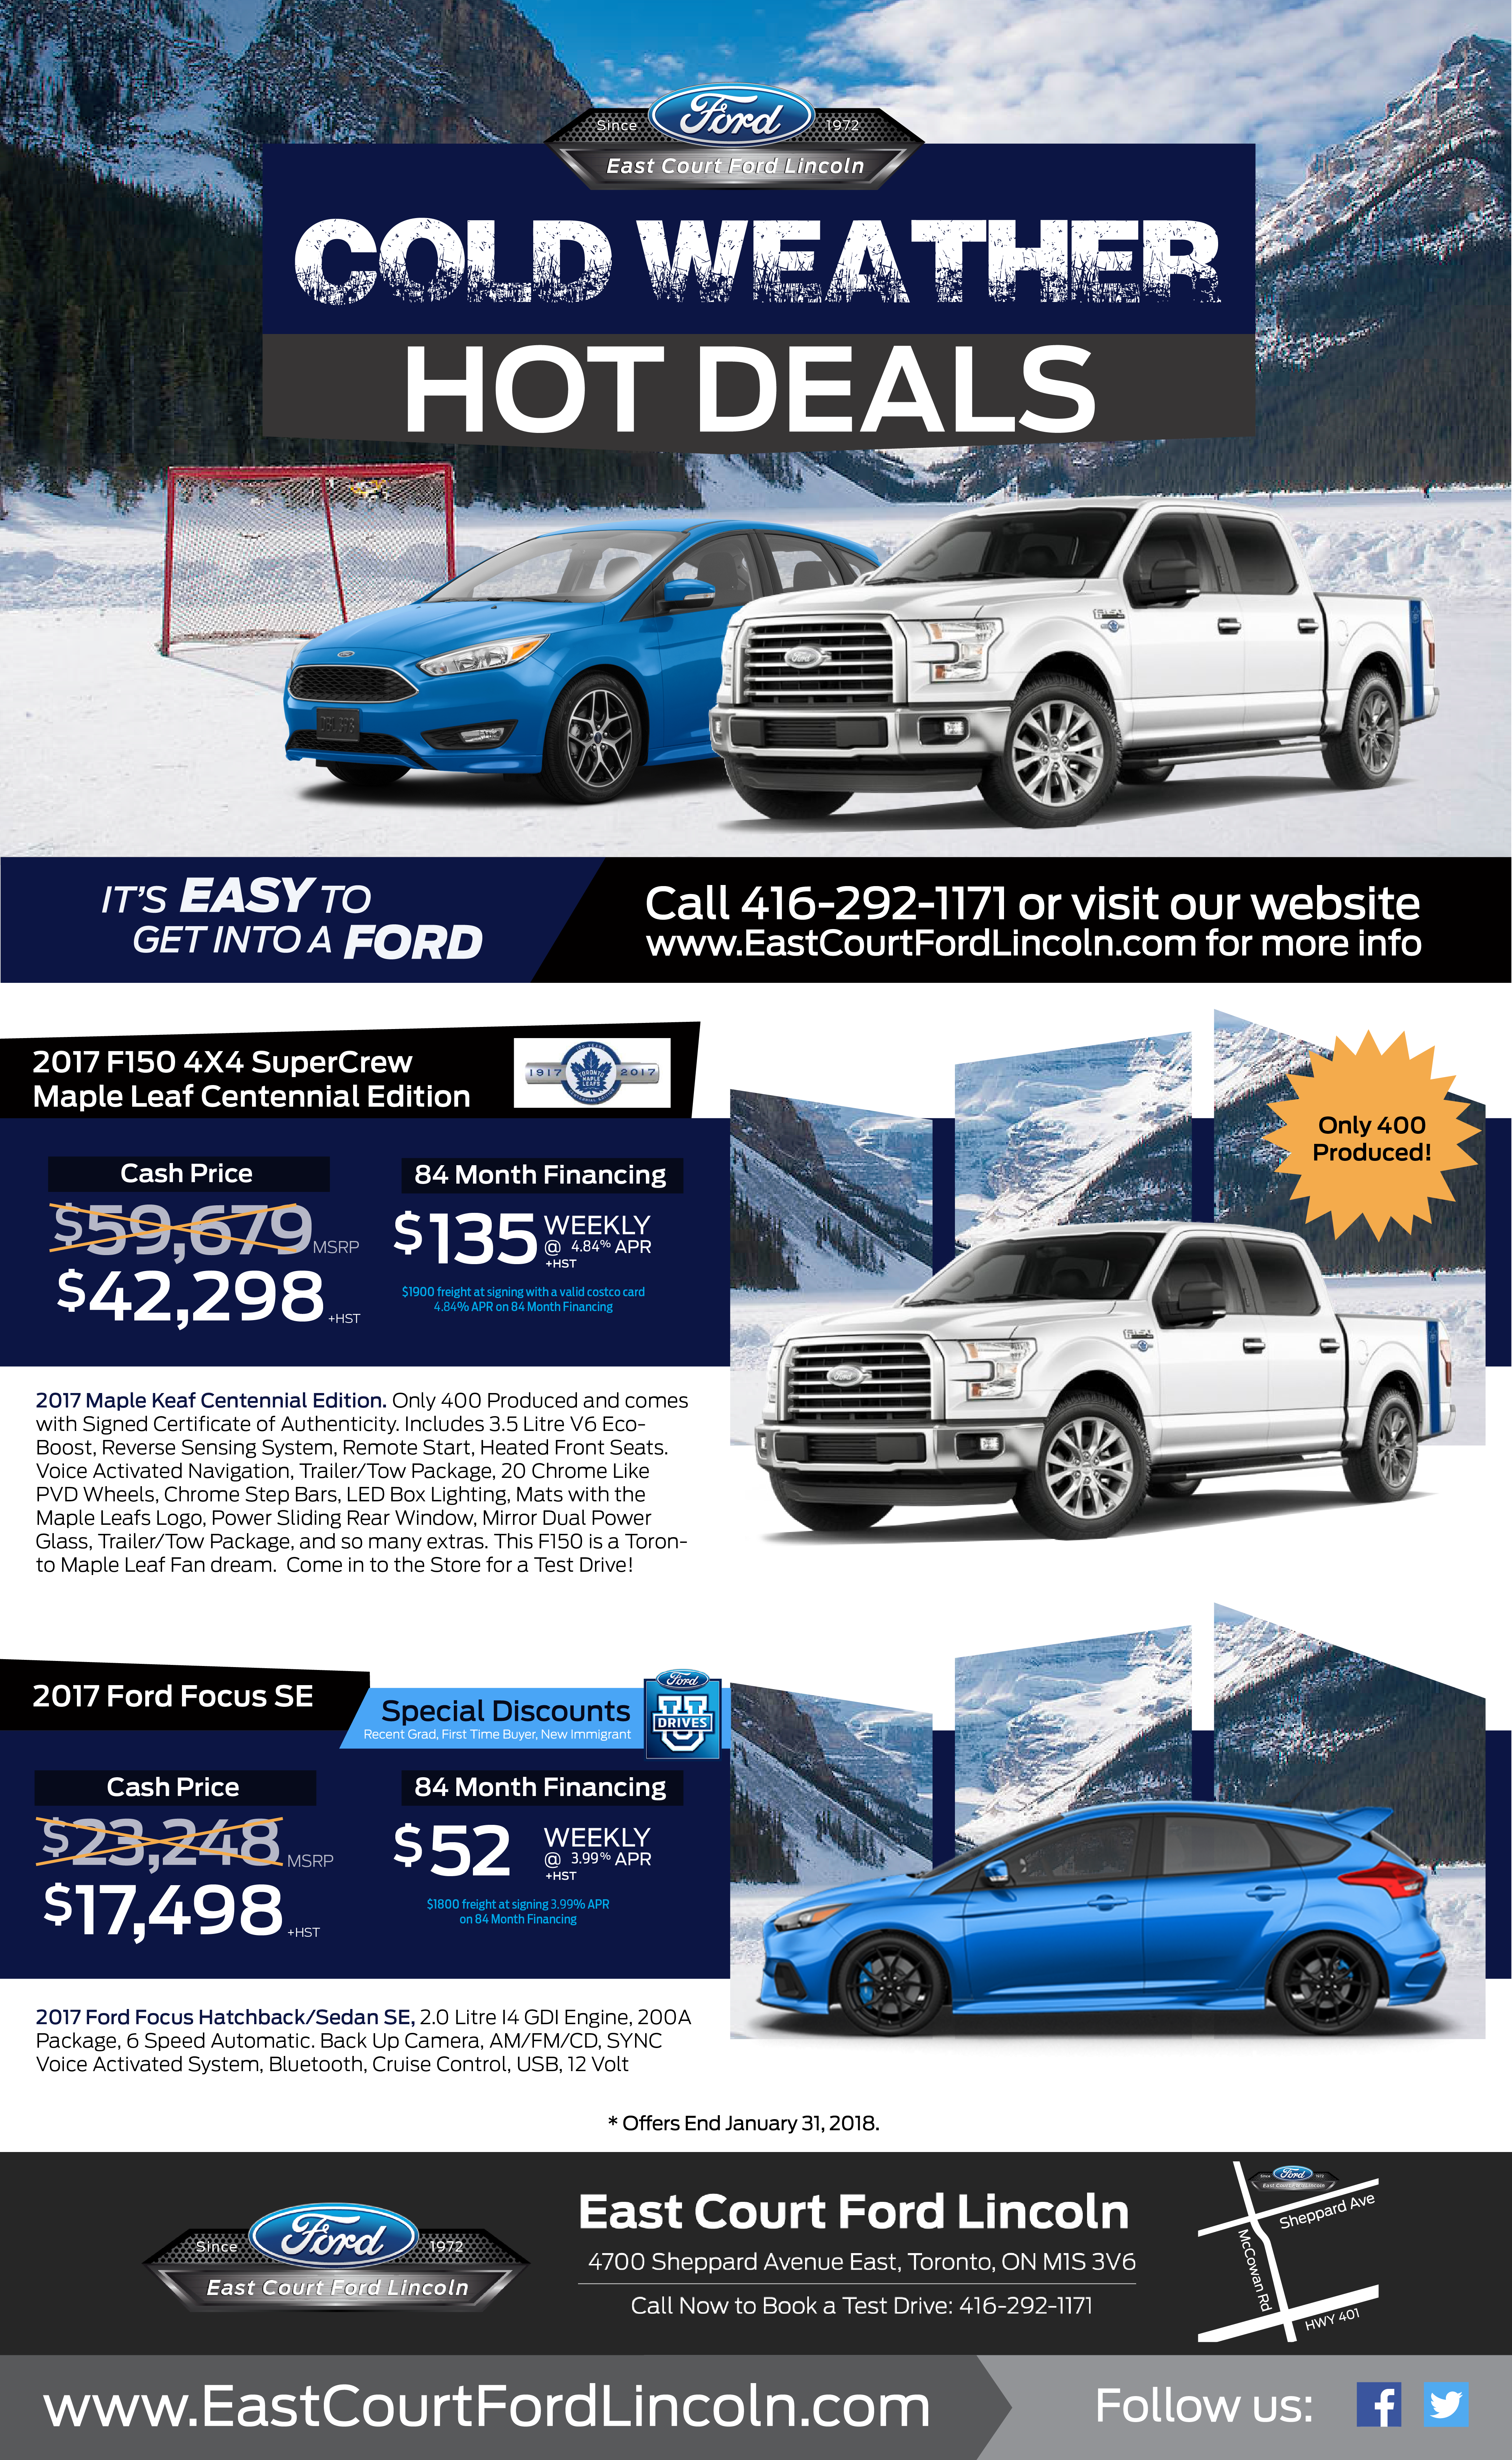 2018 Ford Cold Weather Hot Deals!